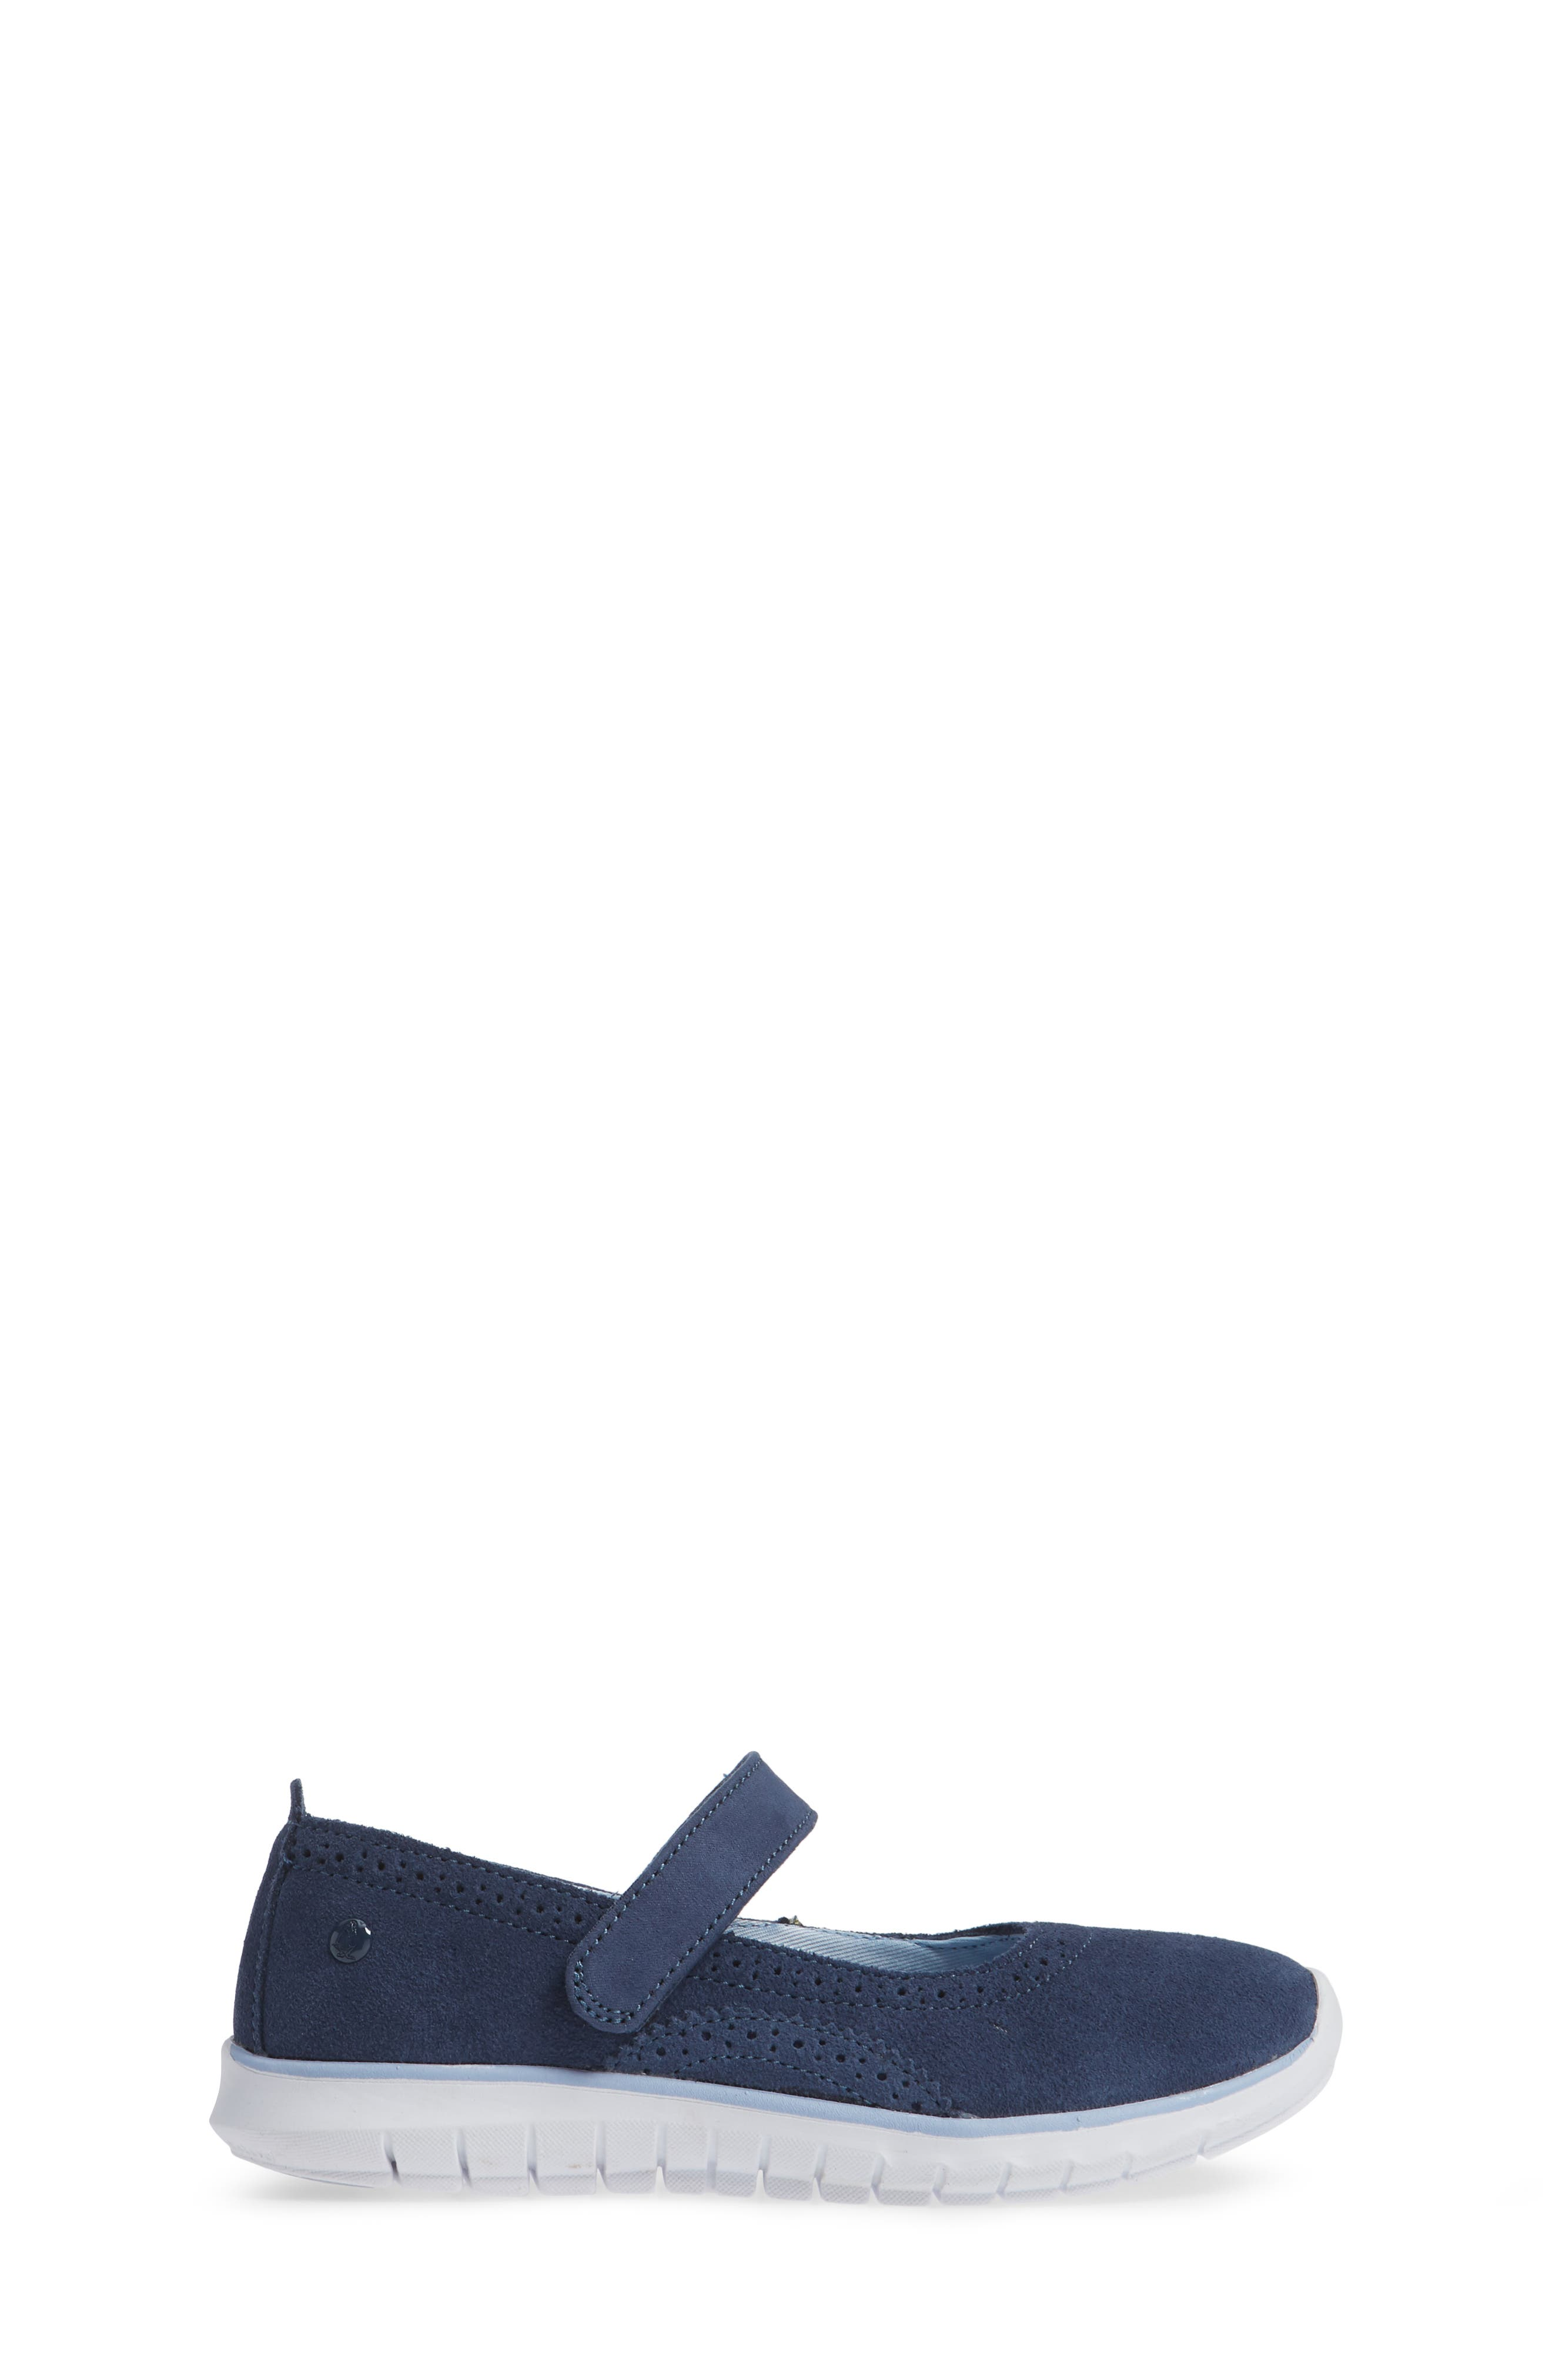 HUSH PUPPIES<SUP>®</SUP>, Flote Tricia Mary Jane Flat, Alternate thumbnail 3, color, NAVY